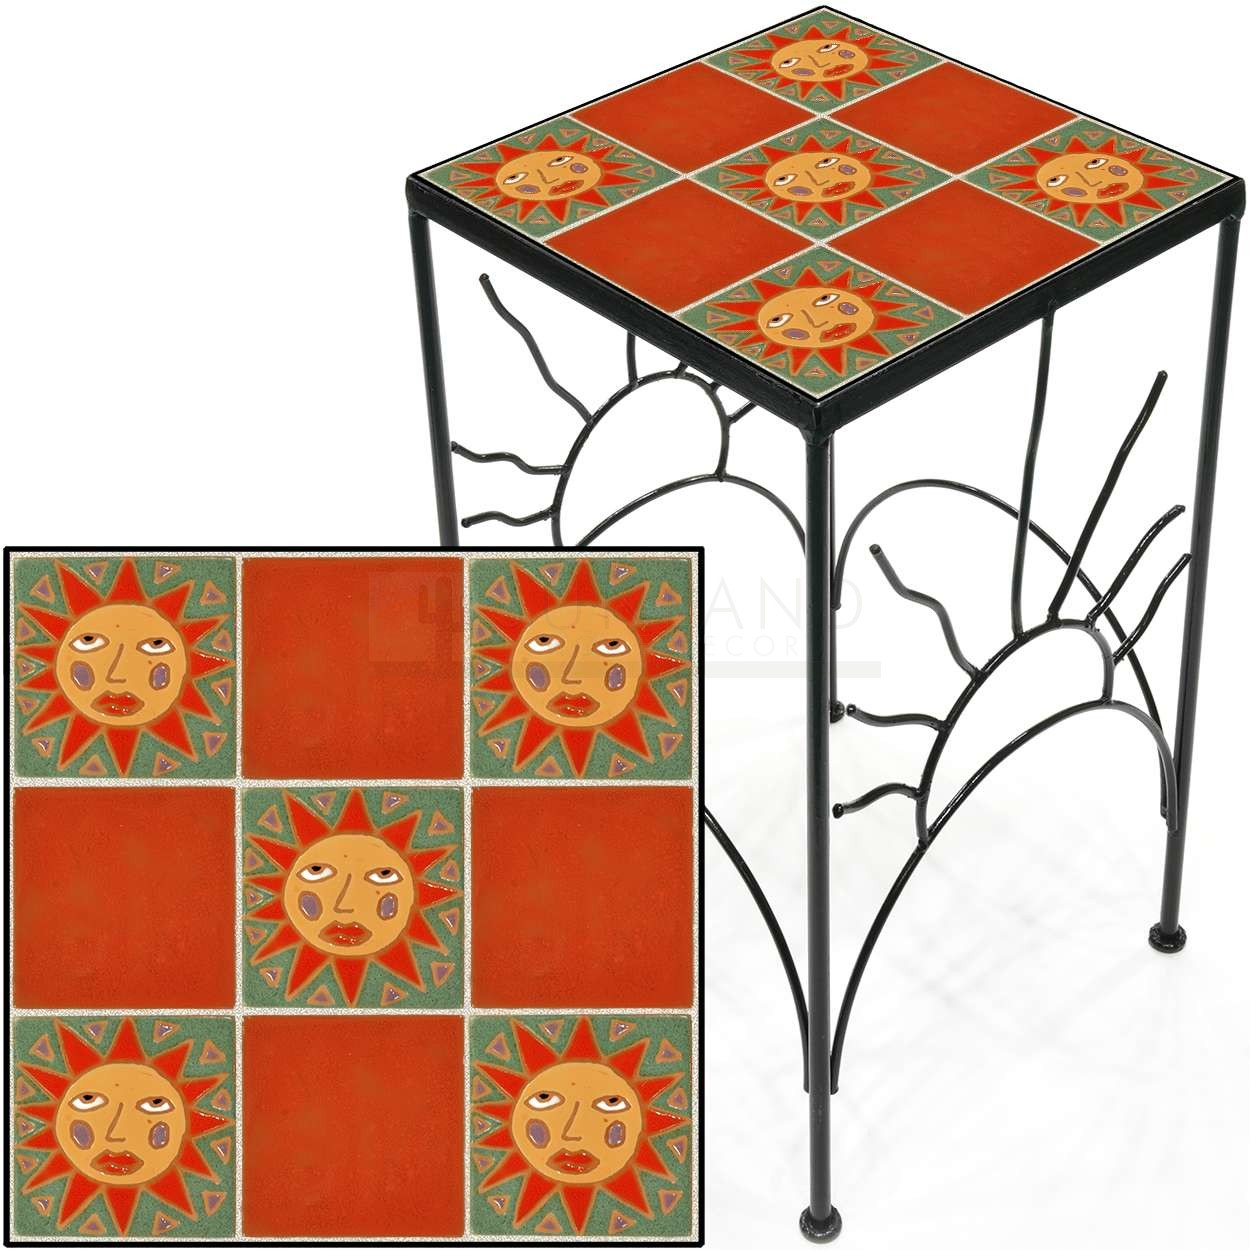 tile accent table sun faces orange tall square save metal and charcoal grey coffee living room storage units popular tables pier floor lamps narrow drop leaf white couch covers